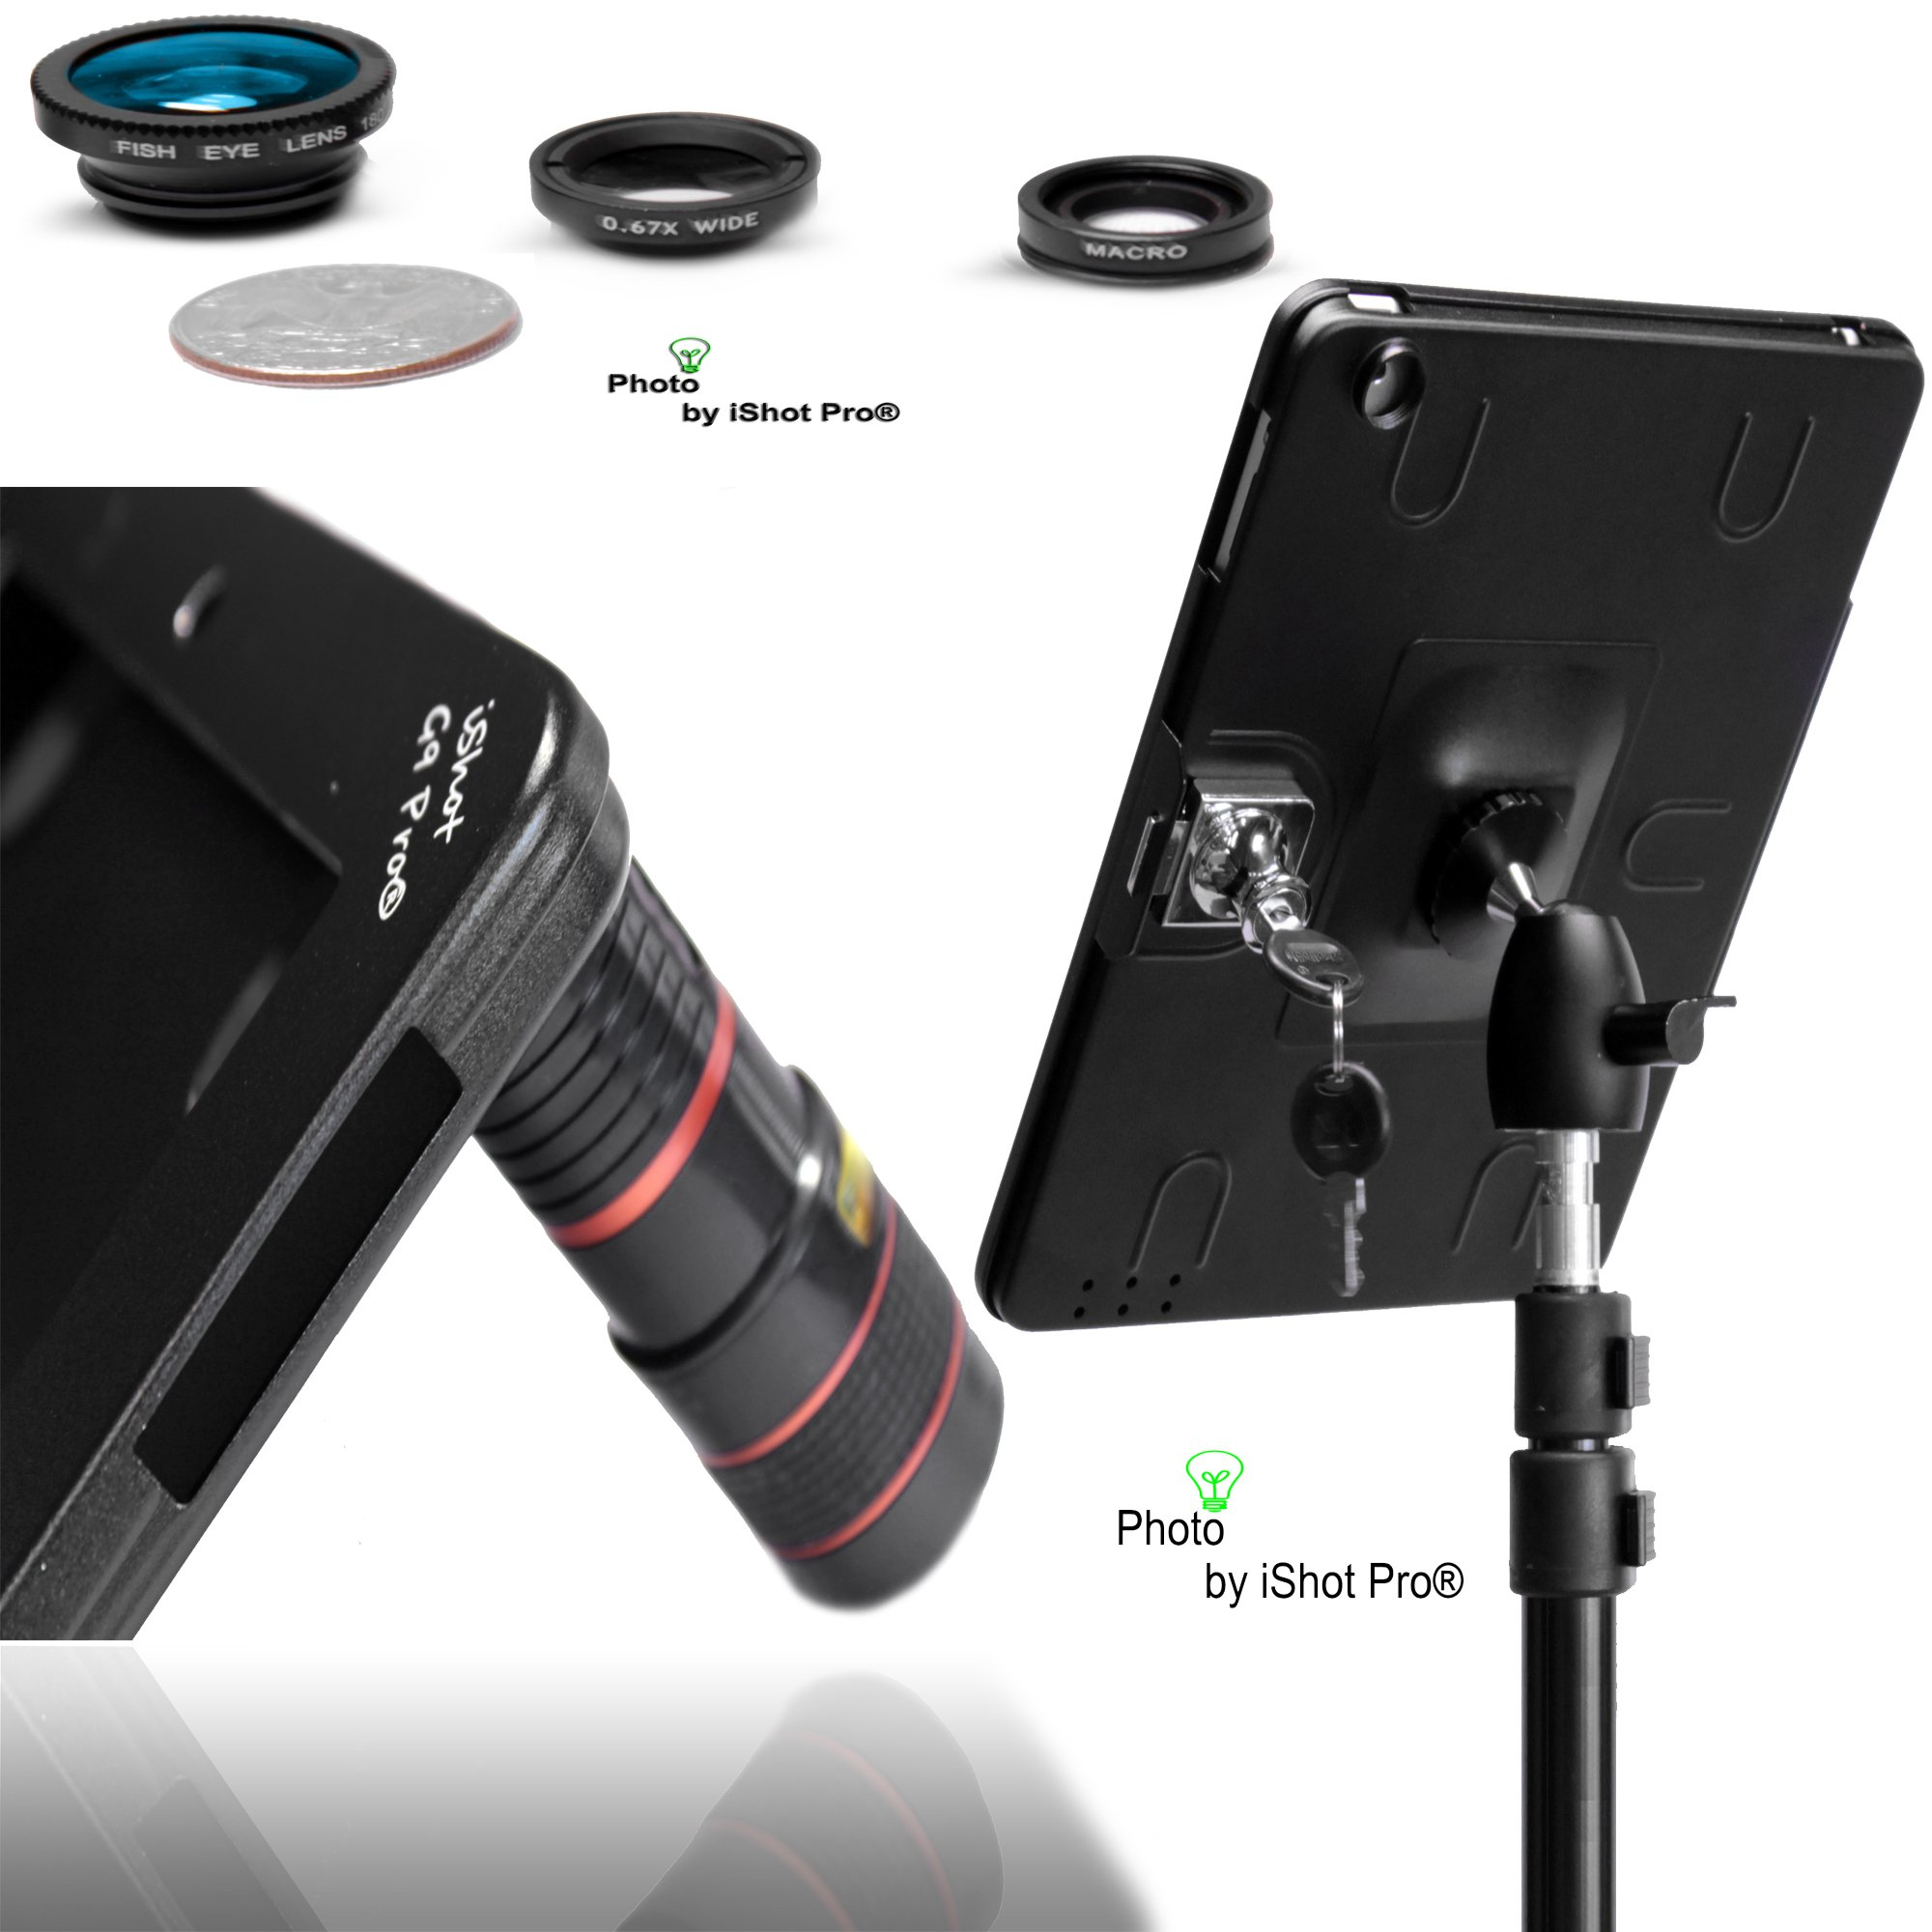 G9 Pro iPad 2 3 4 Tripod Mount Adapter with 4in1 Lens Kit - (1) 8x Zoom Lens / (1) Fish Eye Lens / (1) Wide Angle Lens / (1) Macro Lens (For iPad 2, 3 or 4 Retina) Features Built-in Keyed Security Lock by iShot Pro Mounts - Easily and Safely Mount Your iP